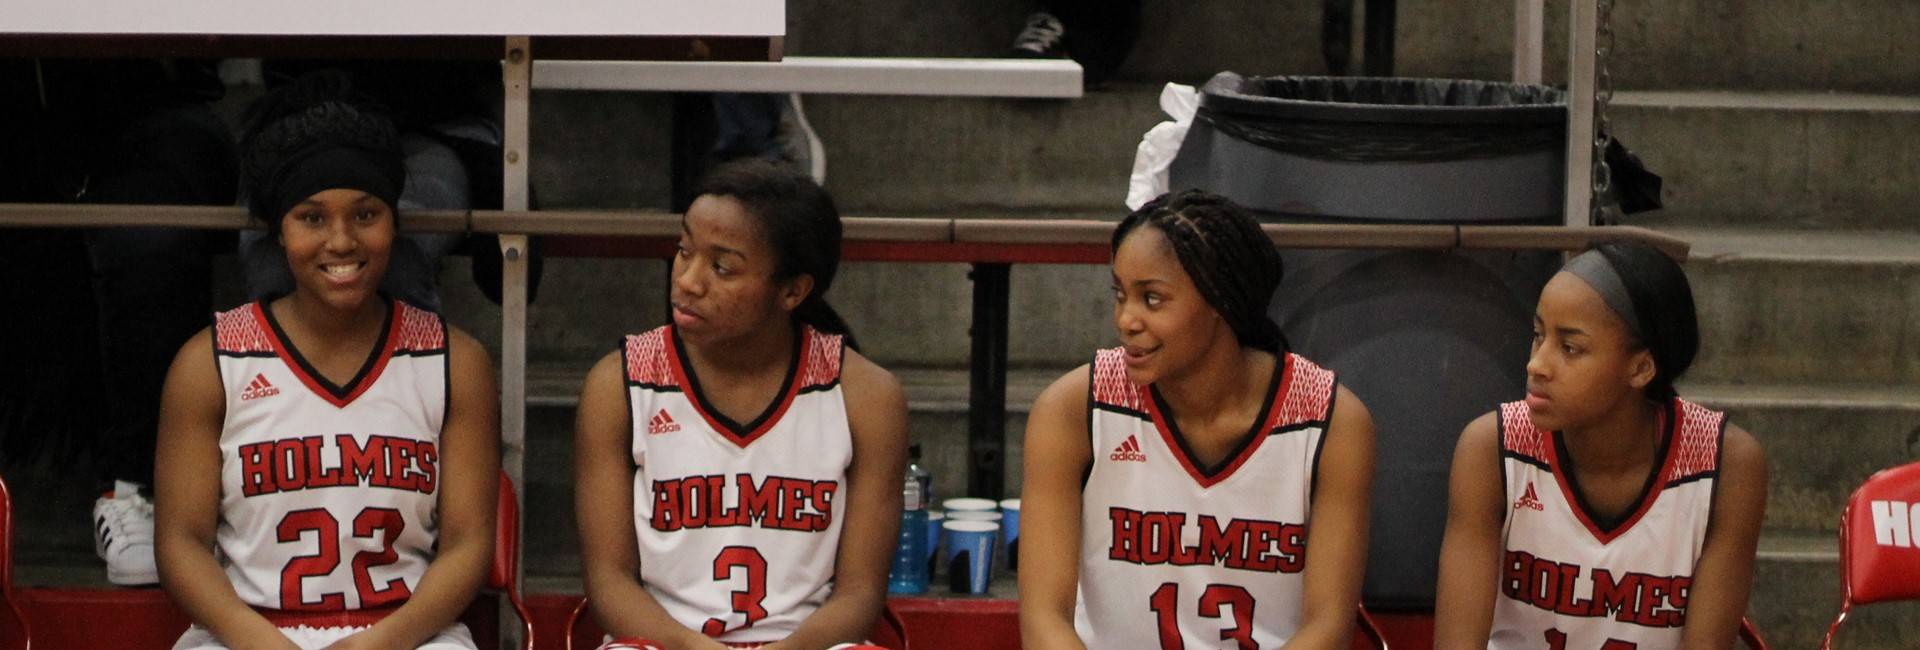 Girls basketball players taking a break from the game.